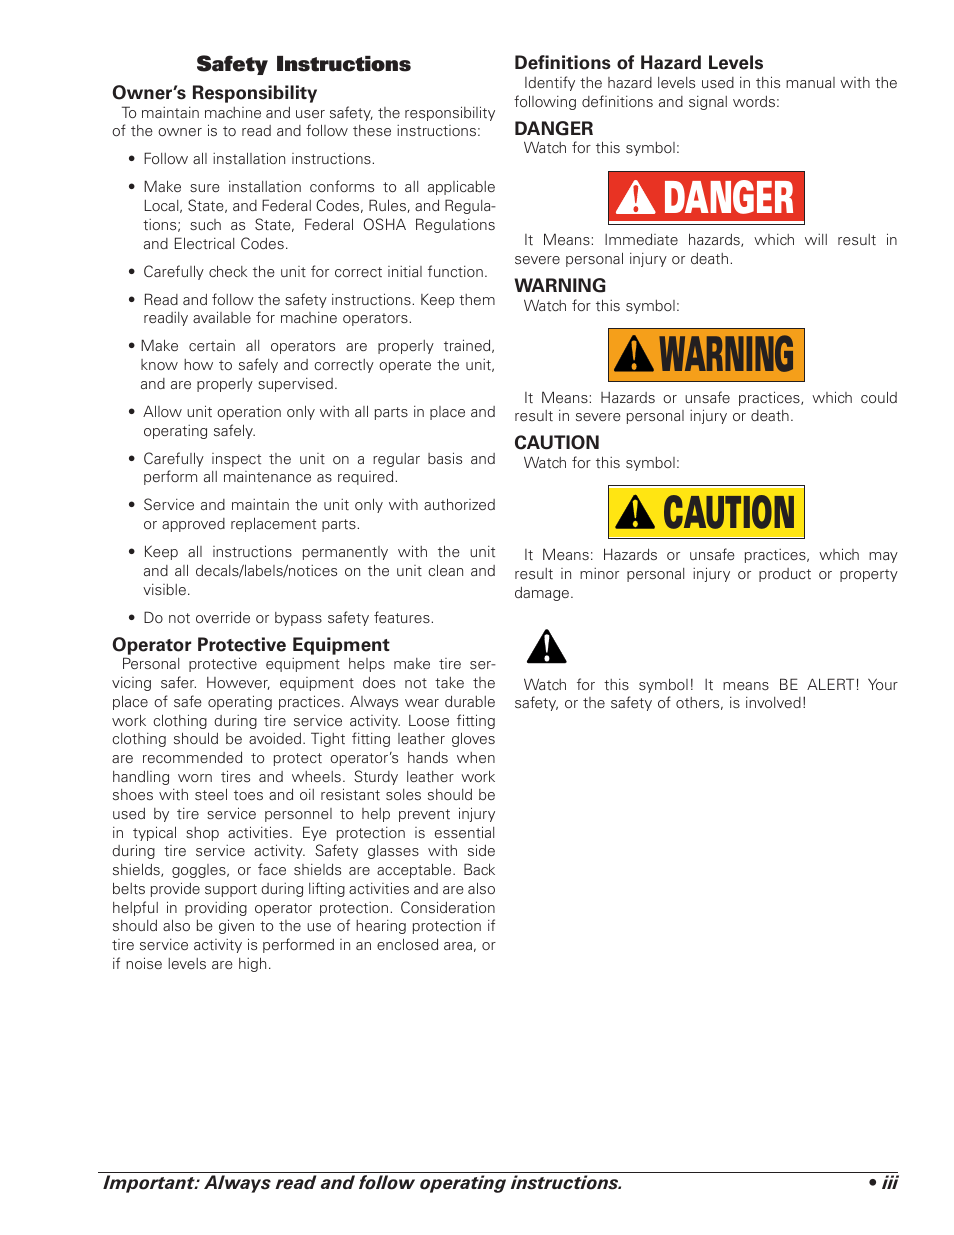 Warning danger caution coats 5030 ae tire changer user manual warning danger caution coats 5030 ae tire changer user manual page 3 24 buycottarizona Choice Image